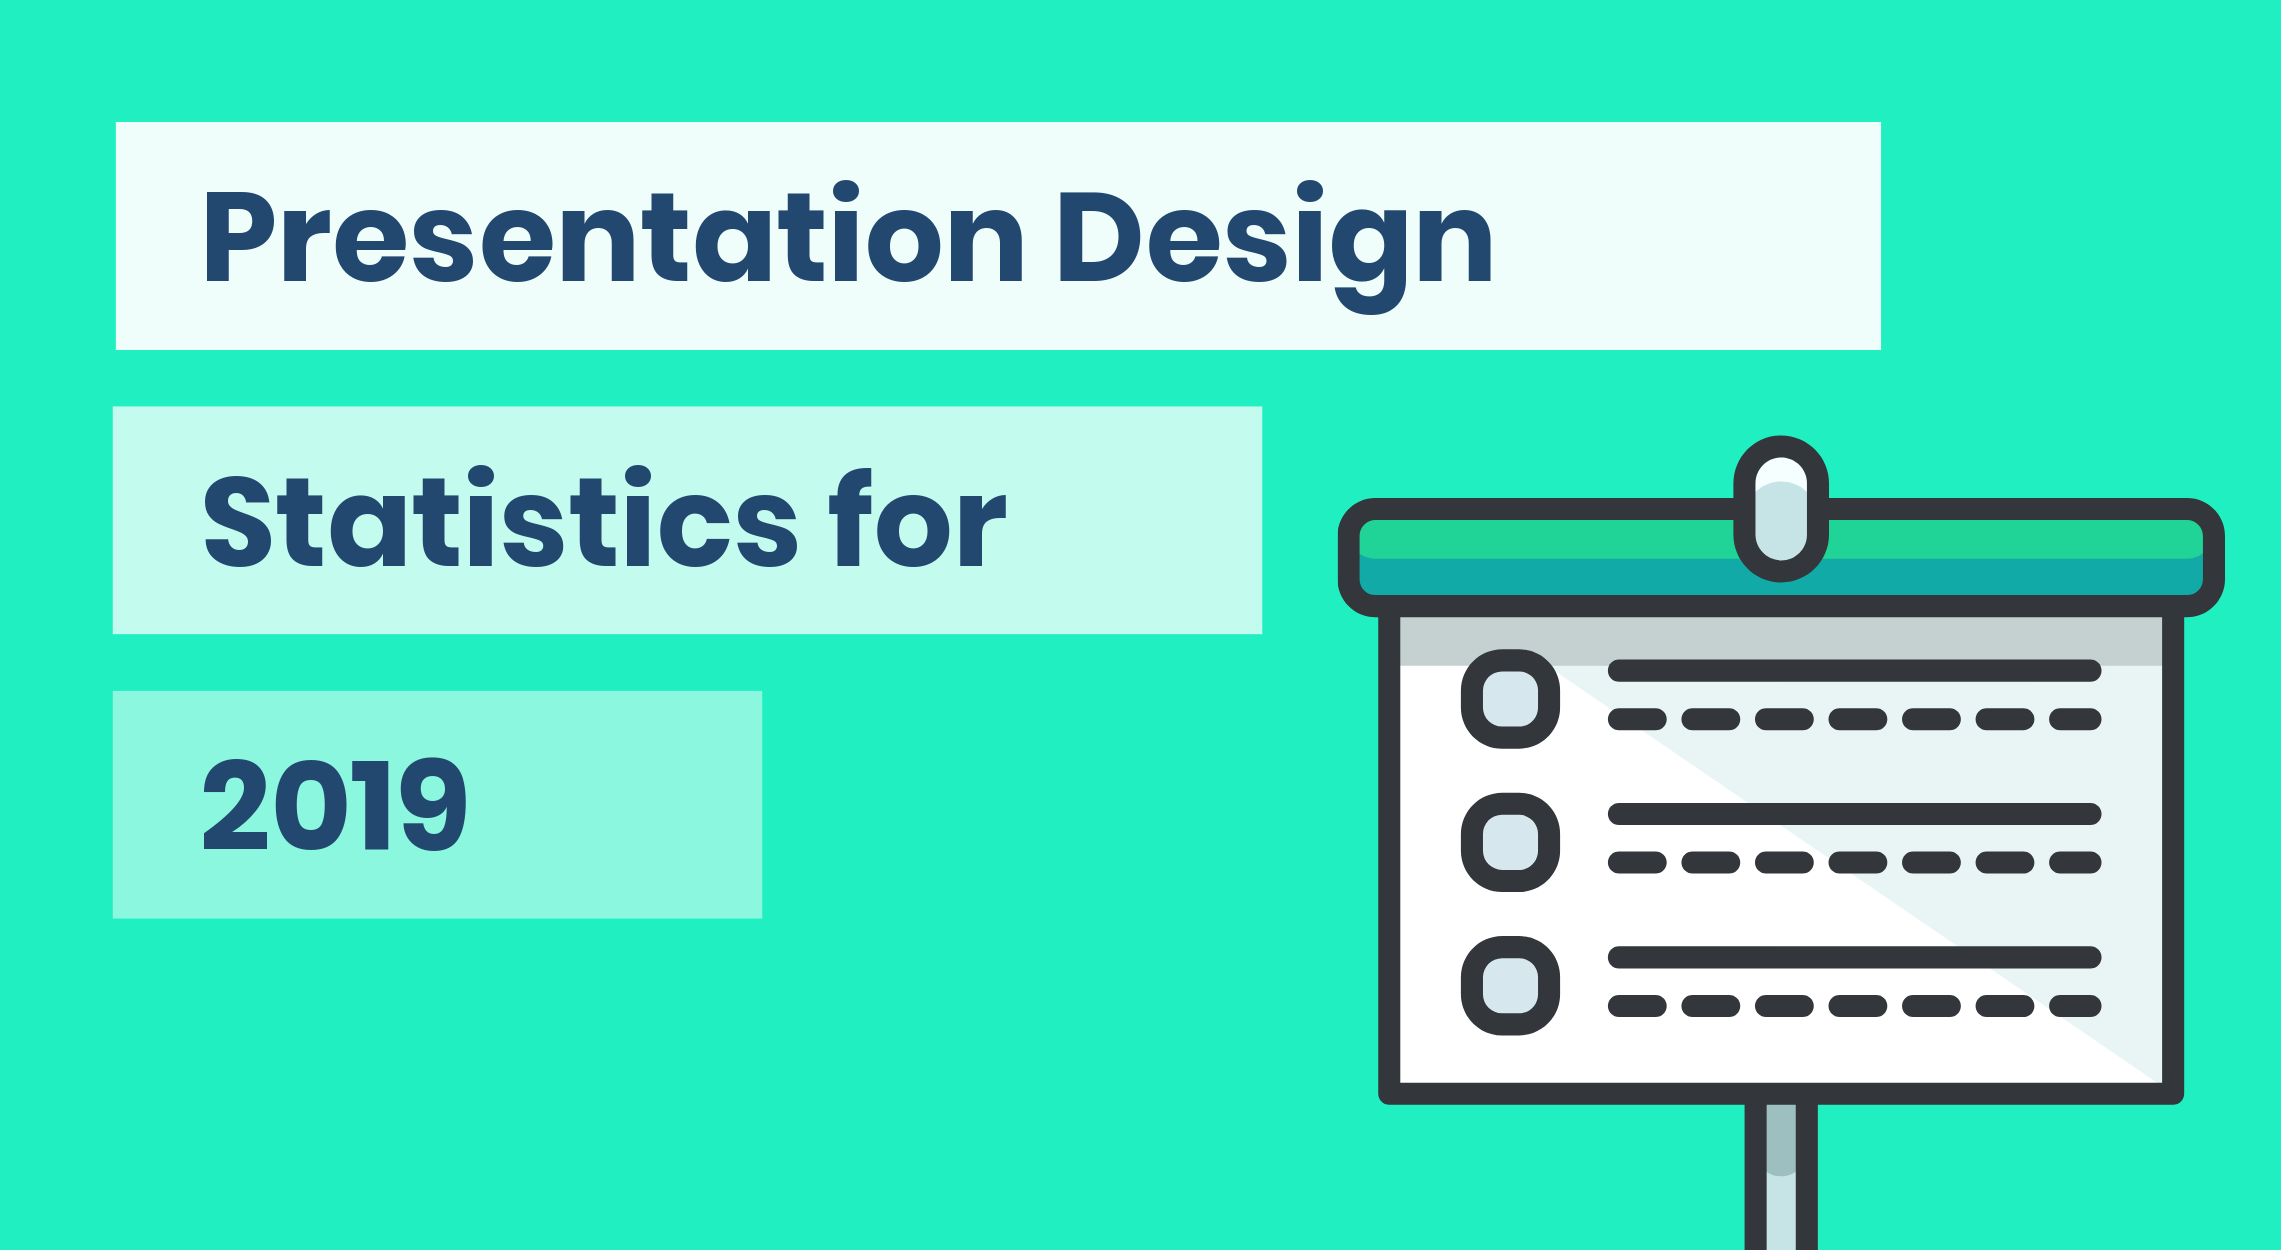 15 Presentation Design Statistics for 2019 [Infographic]